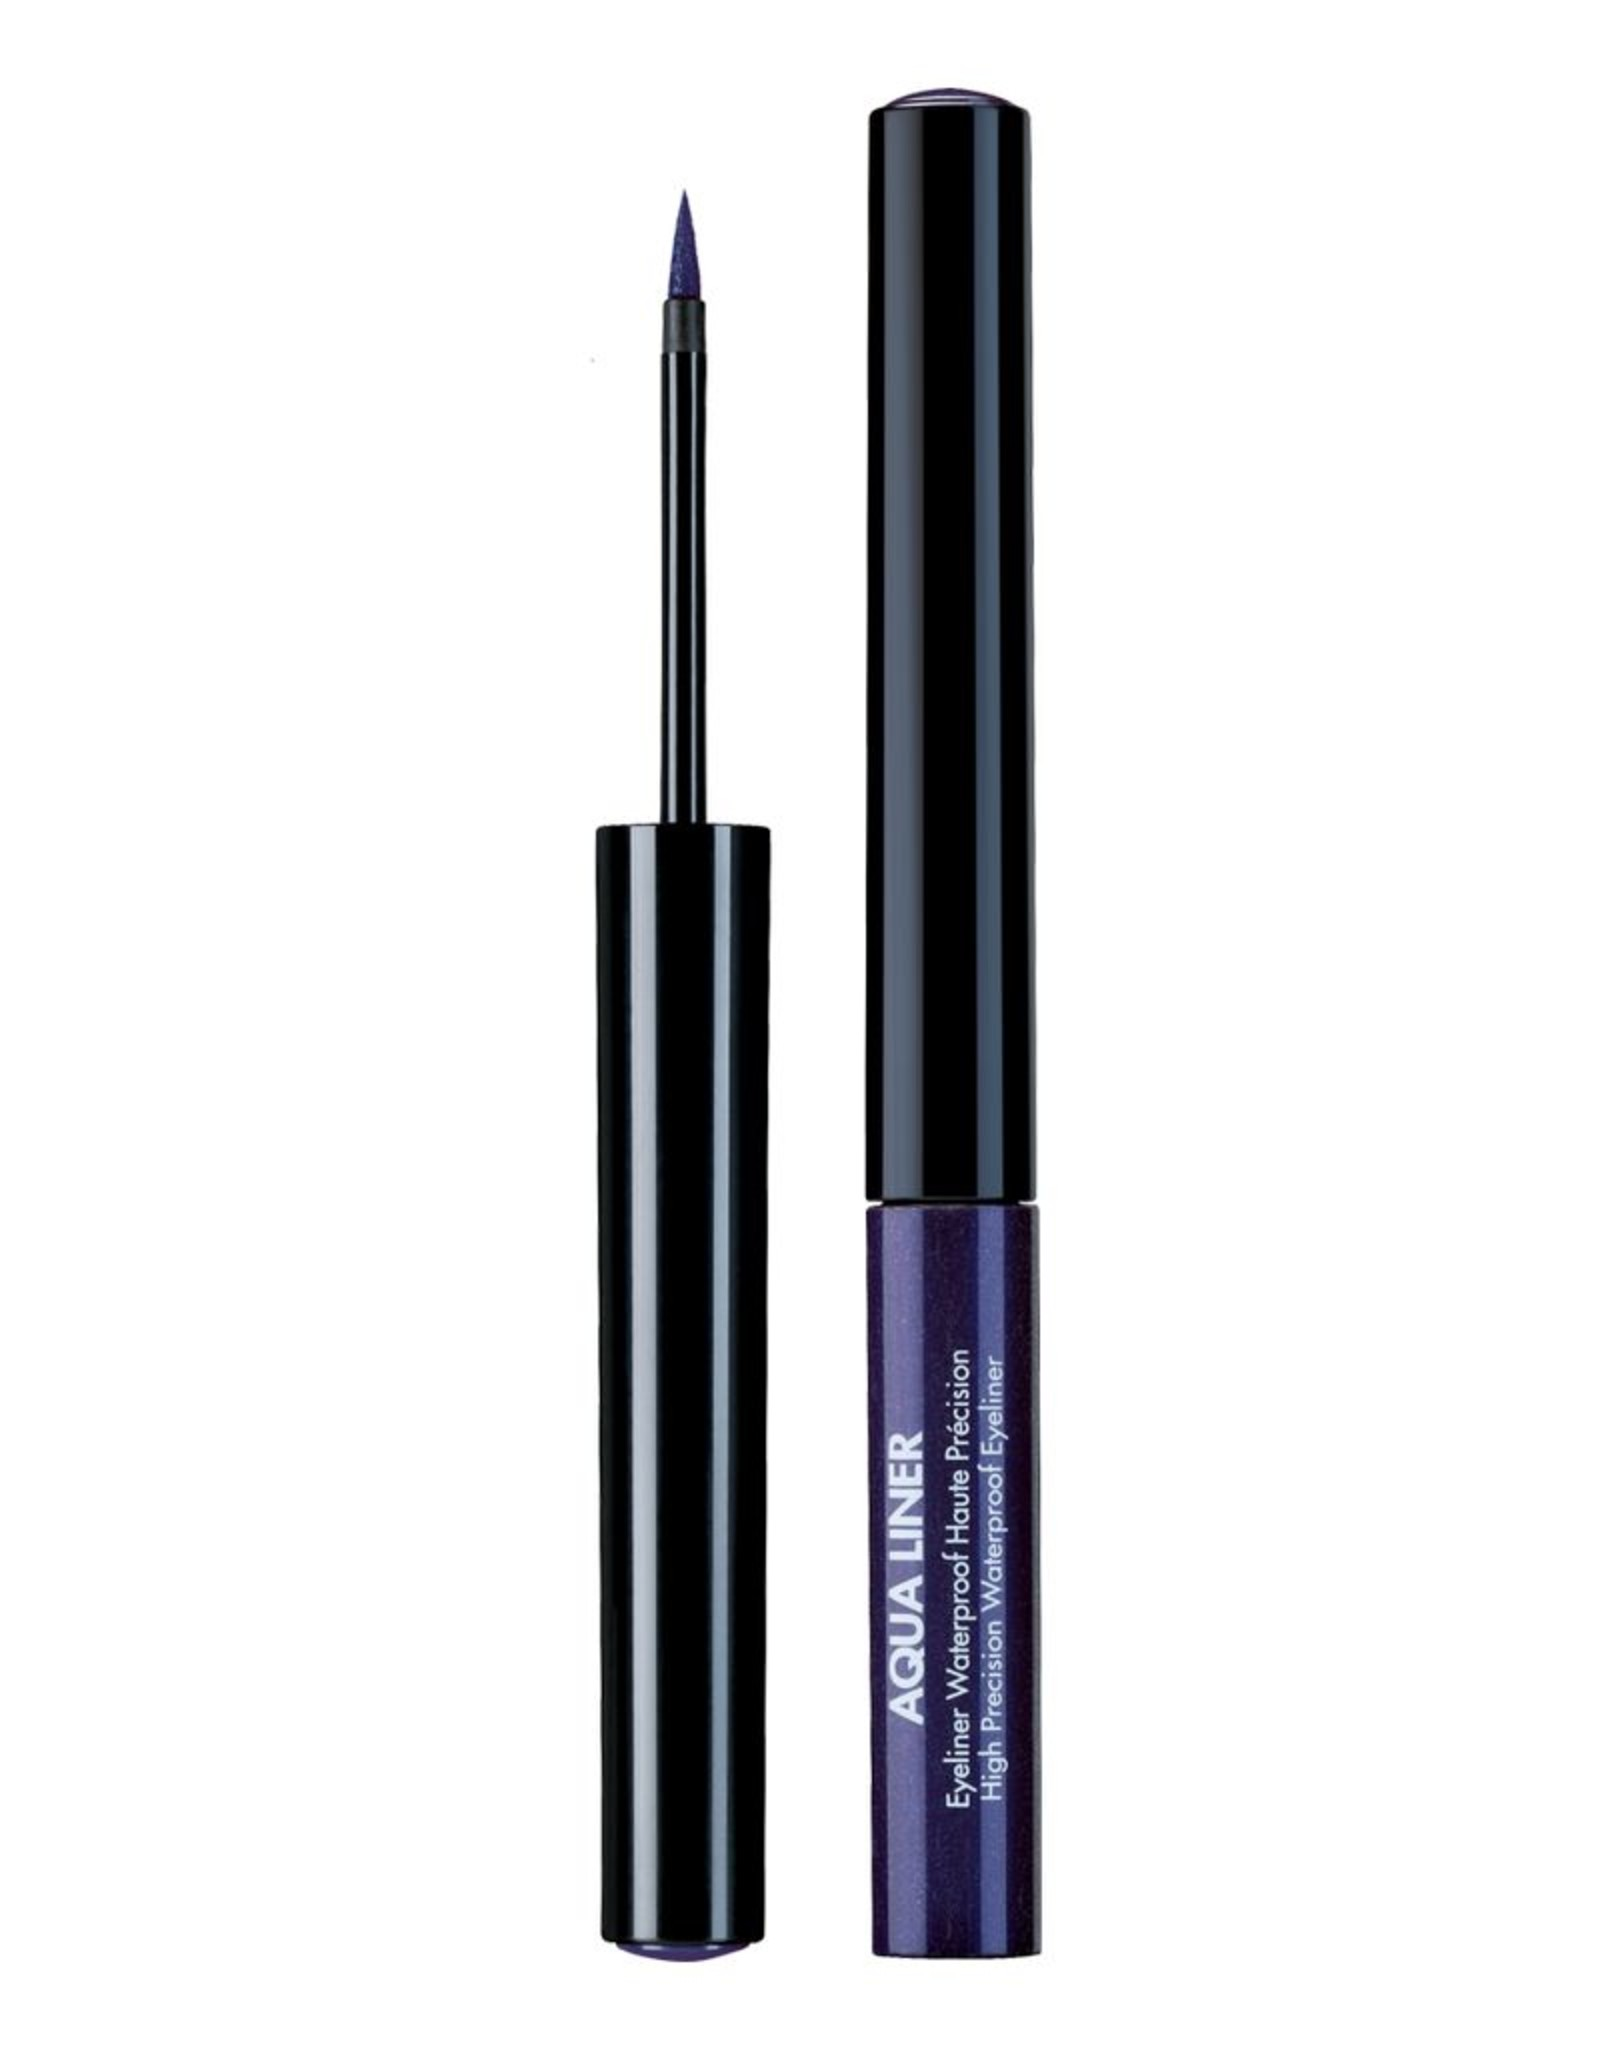 MUFE AQUALINER  1,7ml WPFN7 Violet Noir Diamant / Diamond Black Purple